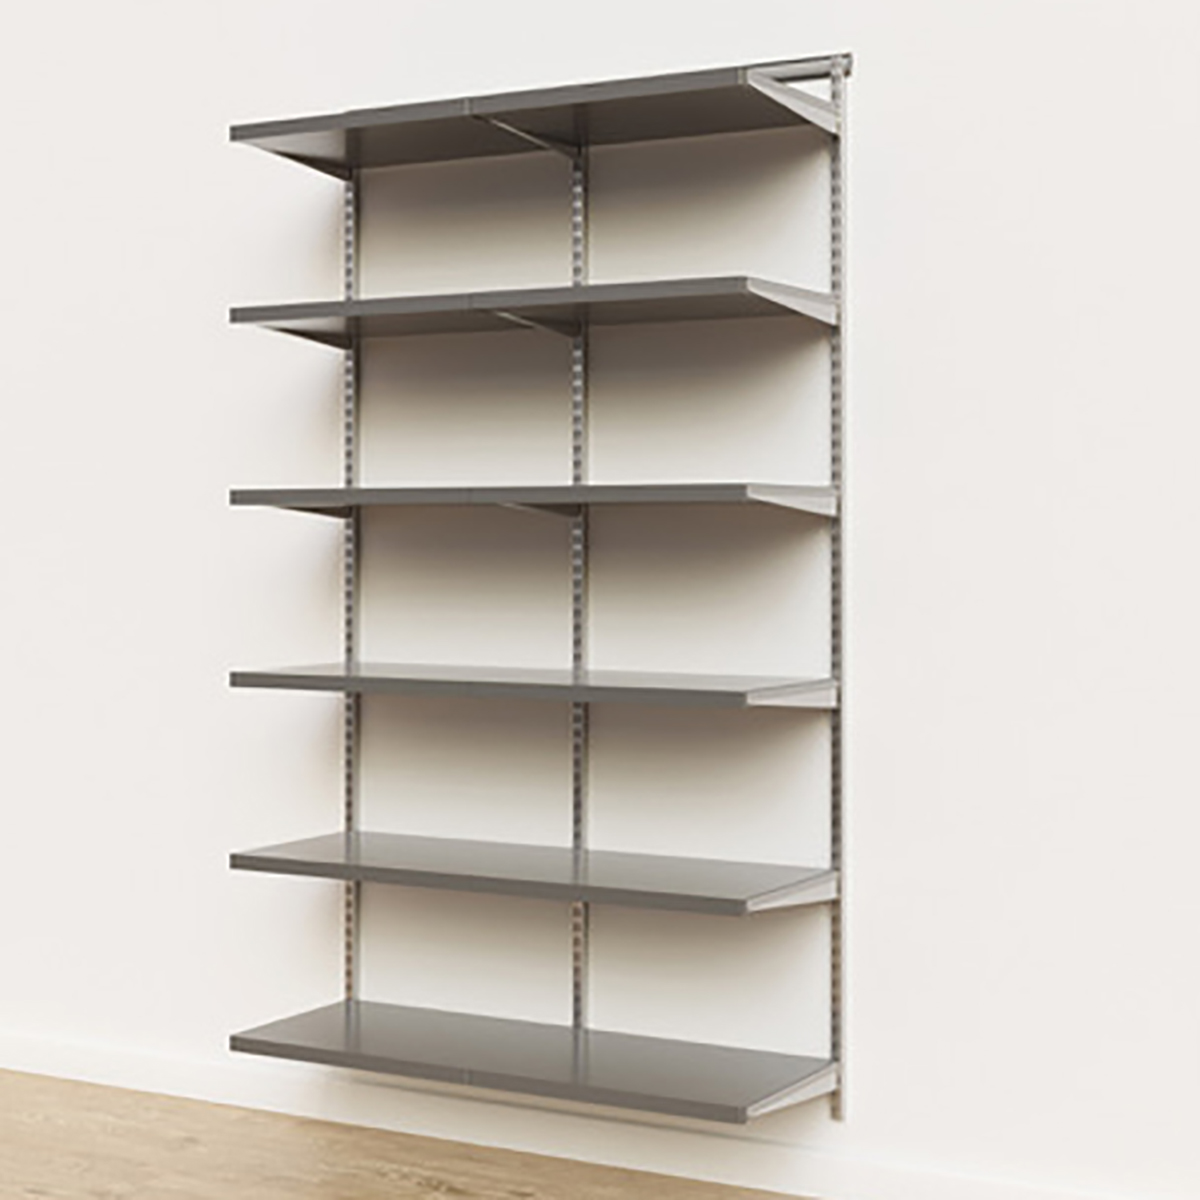 Elfa Décor 4' Platinum & Grey Basic Shelving Units for Anywhere